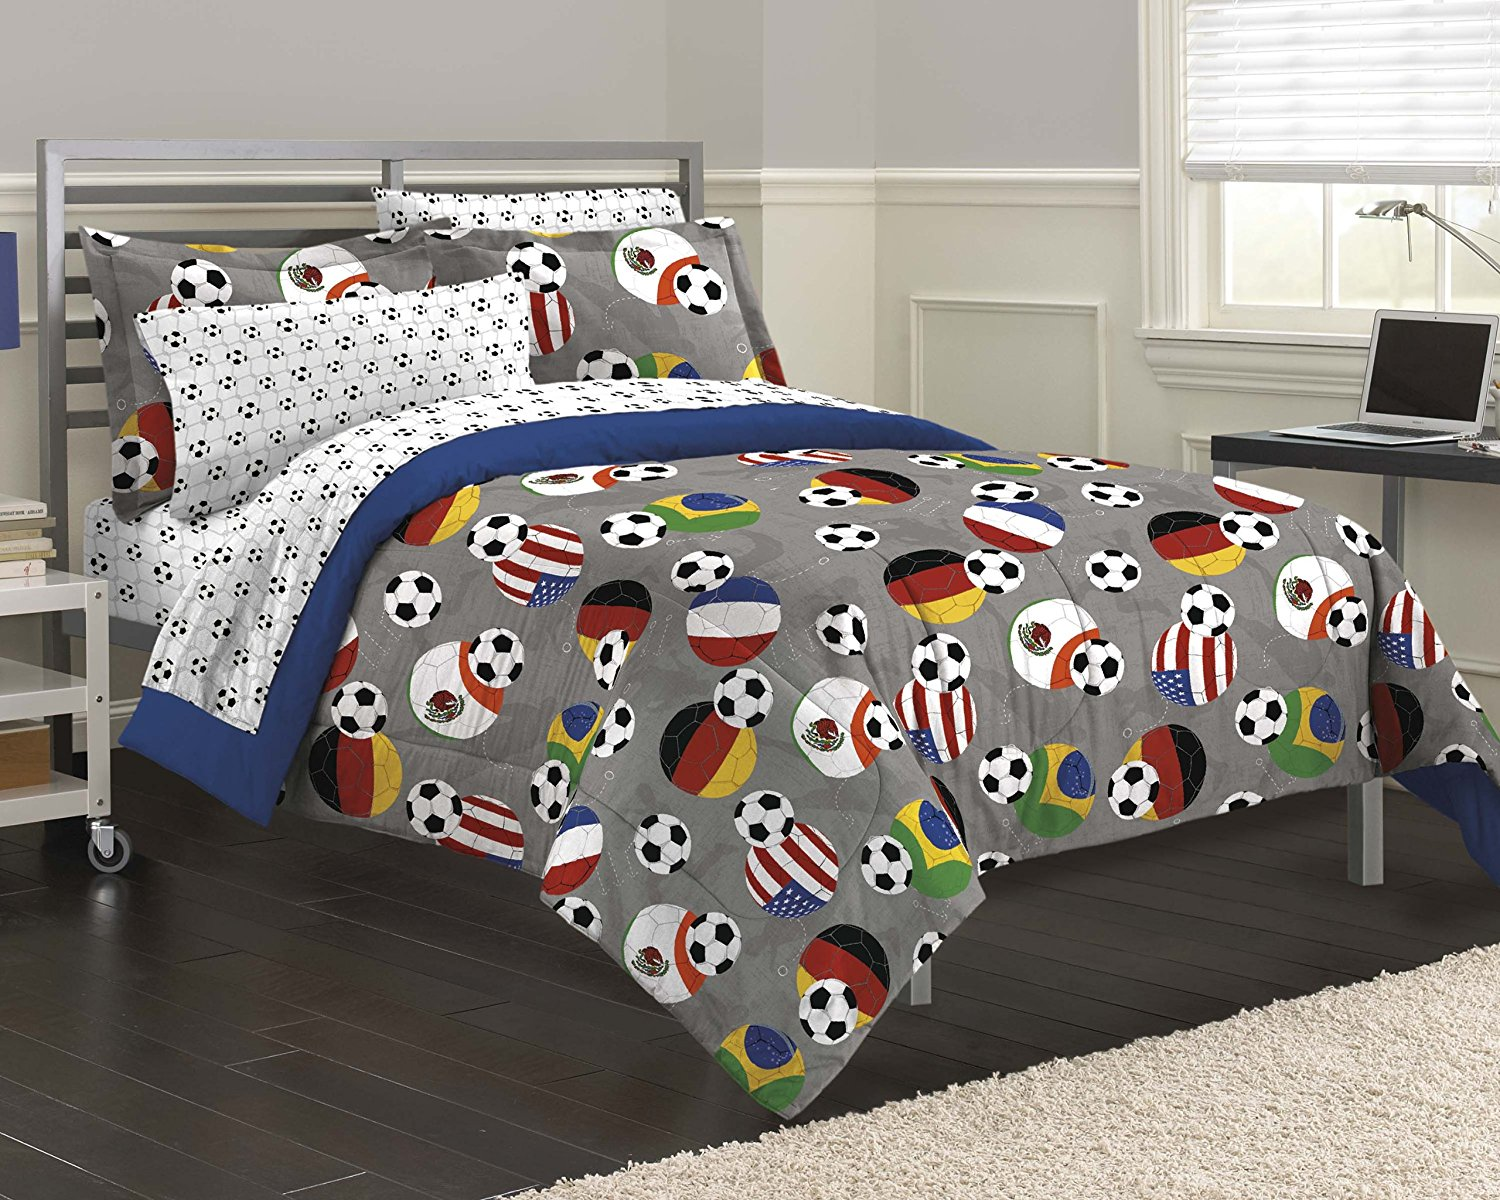 Soccer Fever Bedding Comforter Set Gray Twin Features Multicolored On A Solid Background And Reverses To Nautical